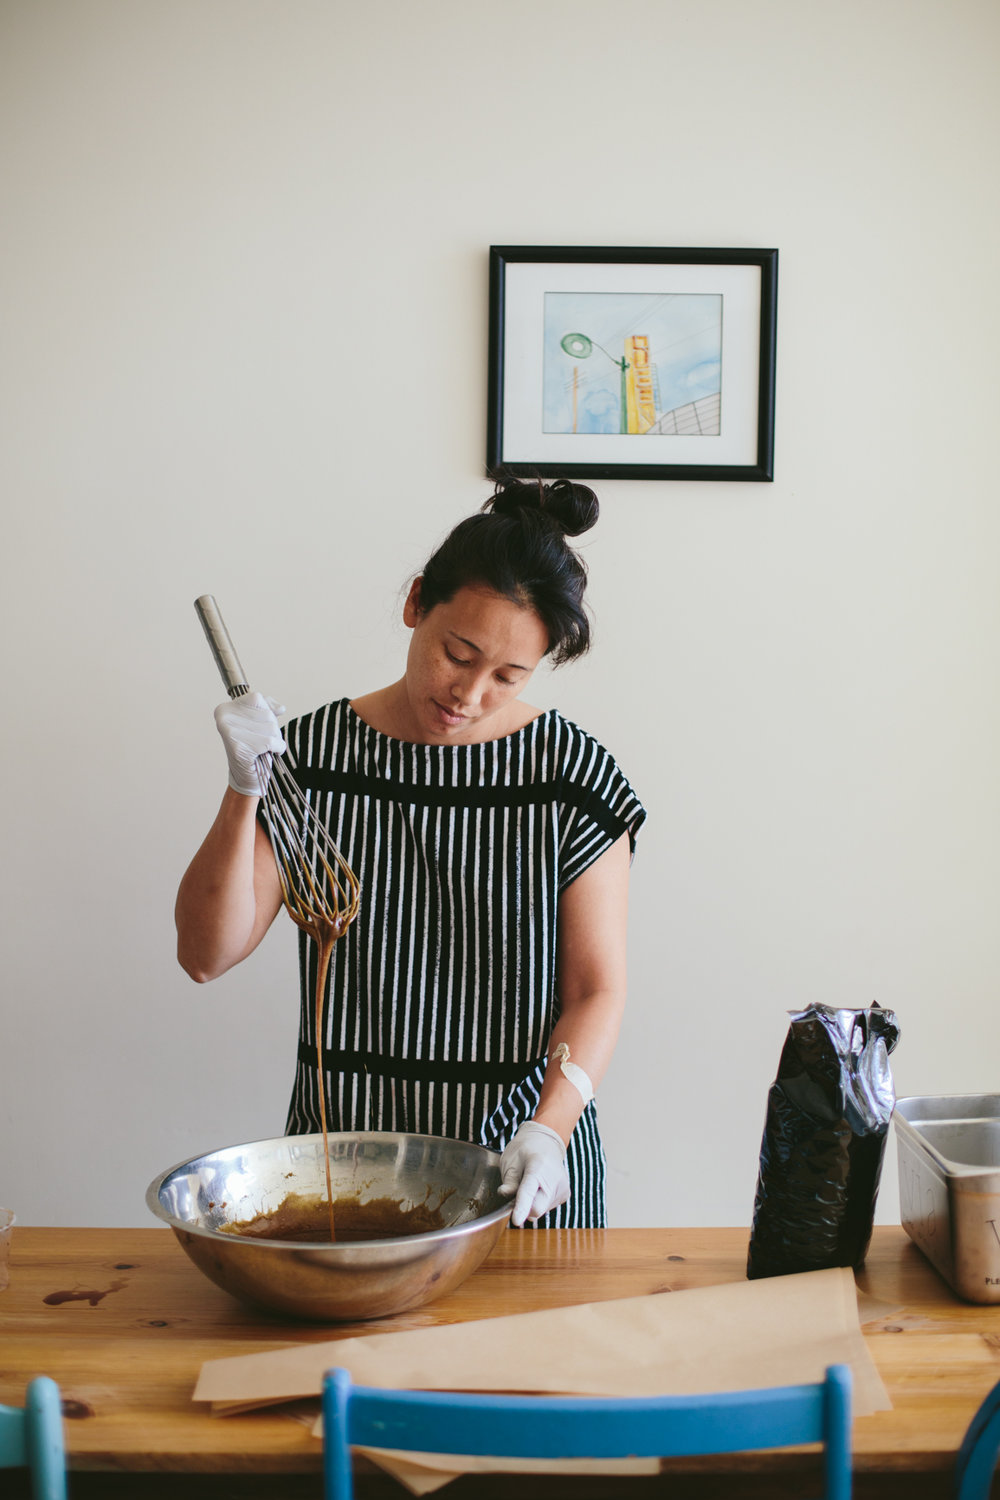 An interview with Melissa Bow of Via Gelato